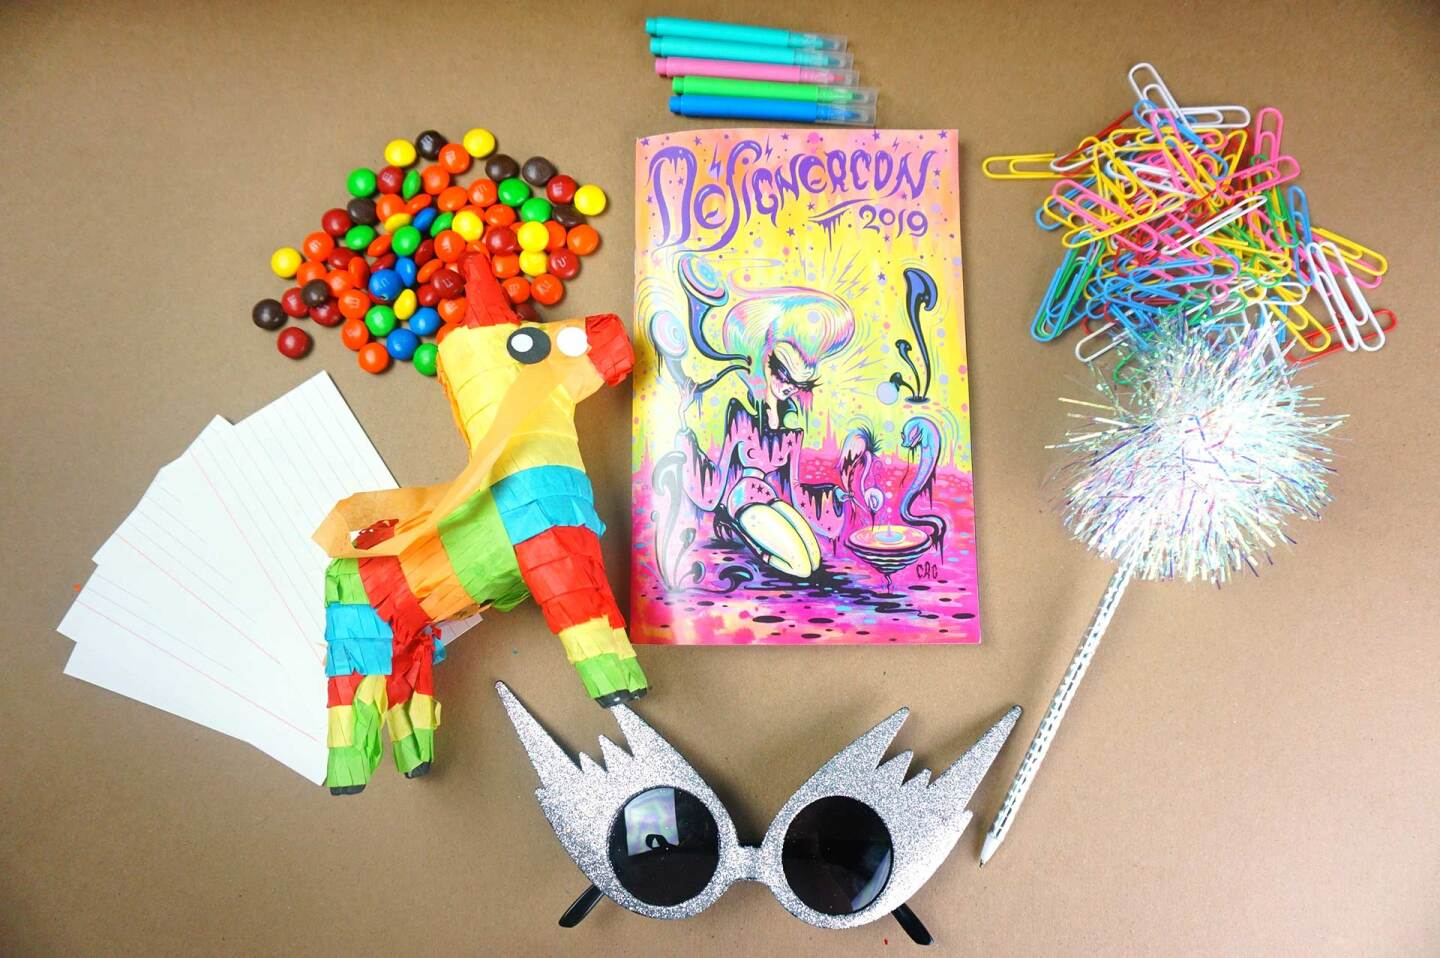 Index cards, spiky sunglasses, a book, a small piñata, markers and colorful paper clips are laid out on a table.